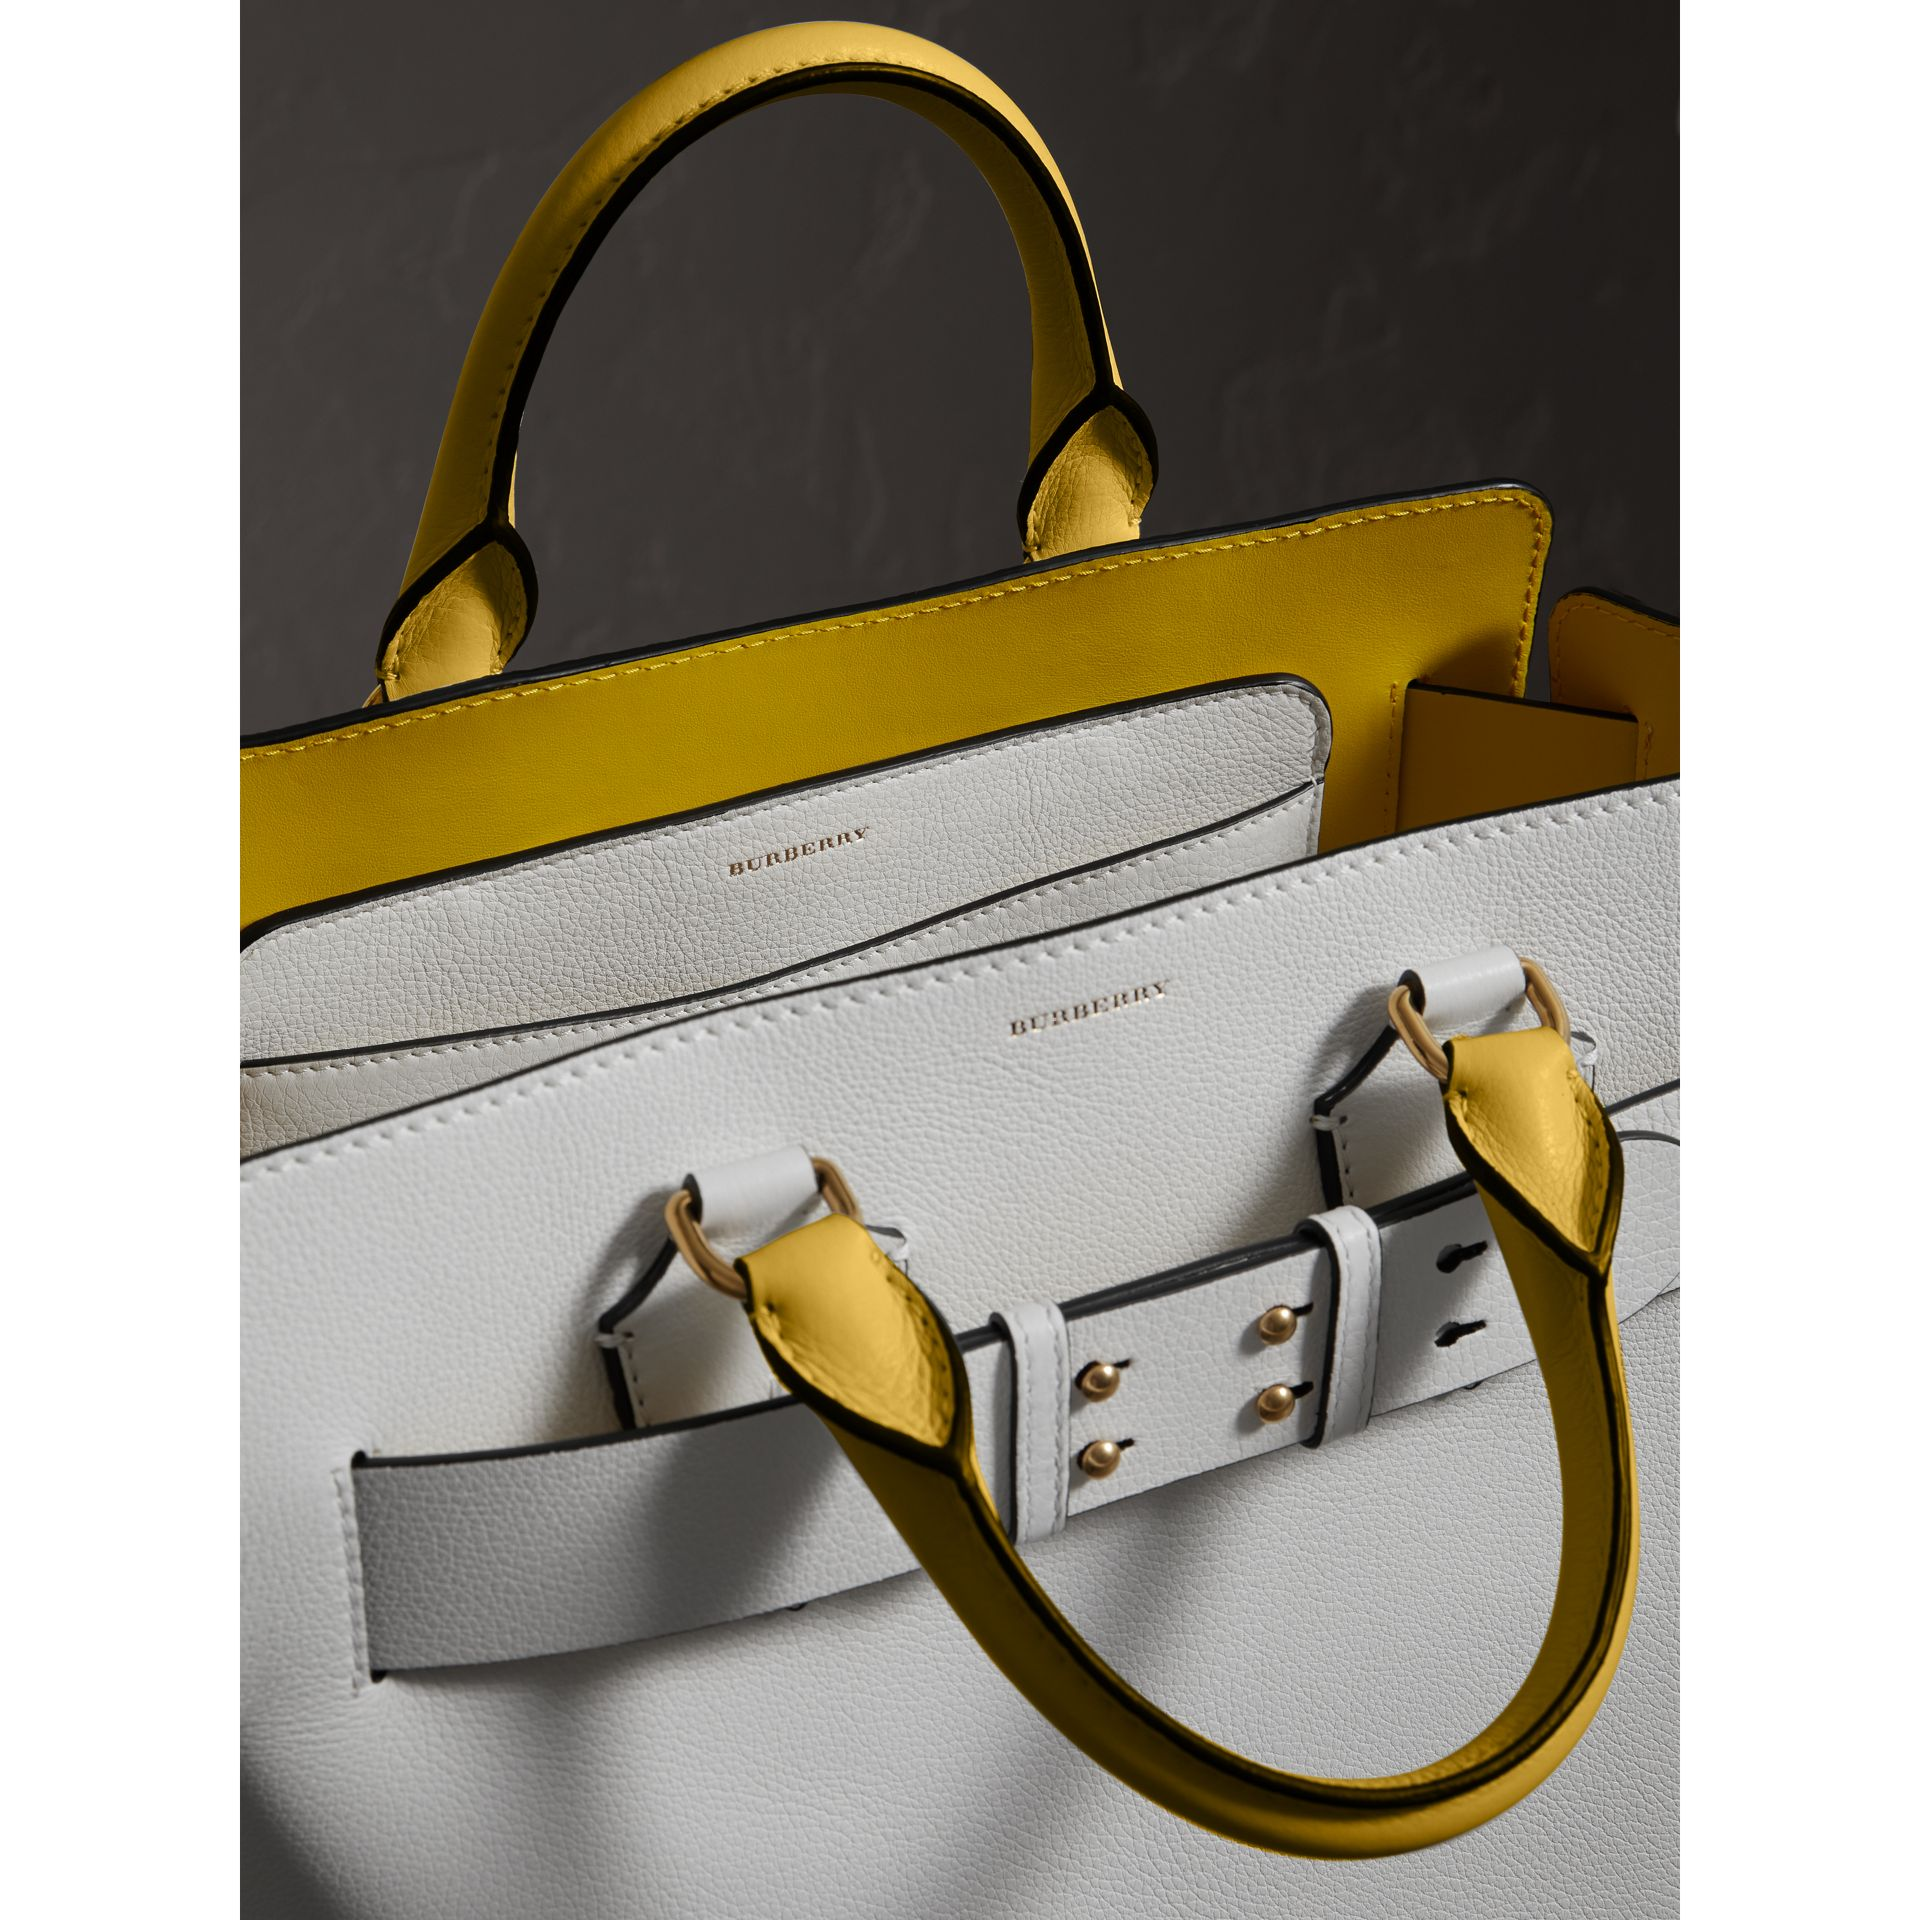 Sac The Belt moyen en cuir (Blanc Craie/jaune) - Femme | Burberry Canada - photo de la galerie 3